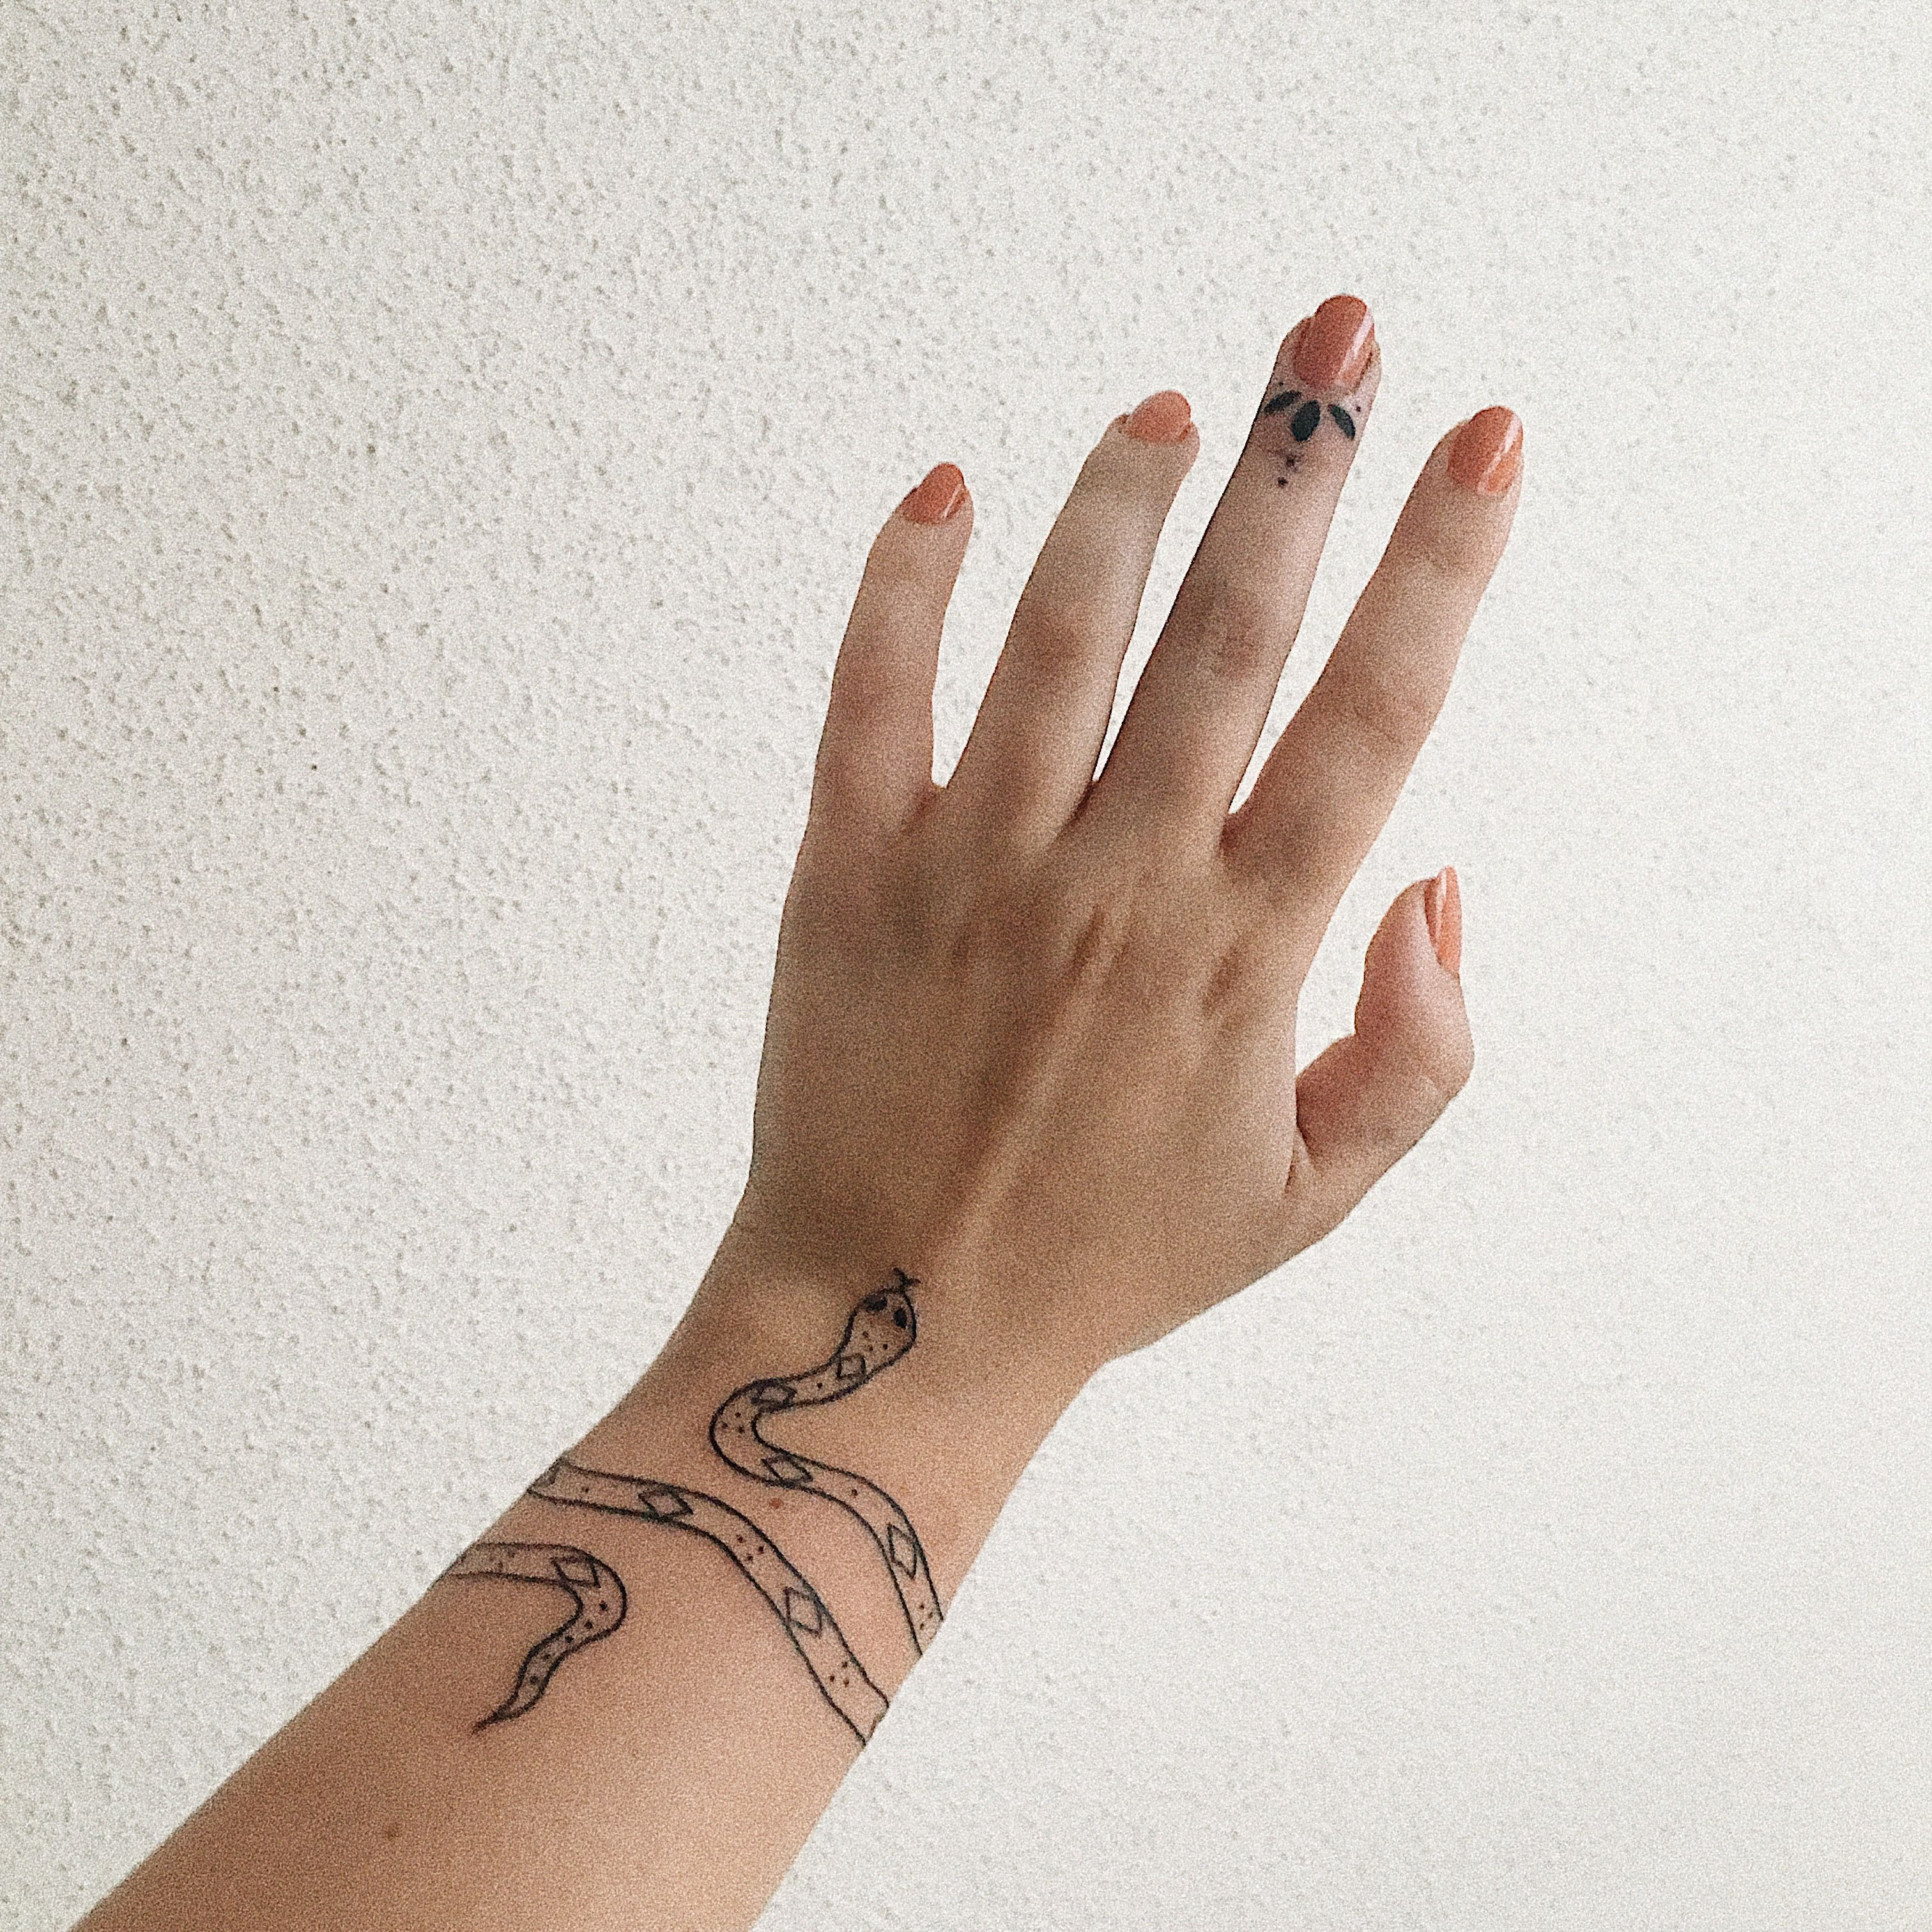 Snake Wrist Tattoo And Small Finger Tattoo Done By Jess At Impulse